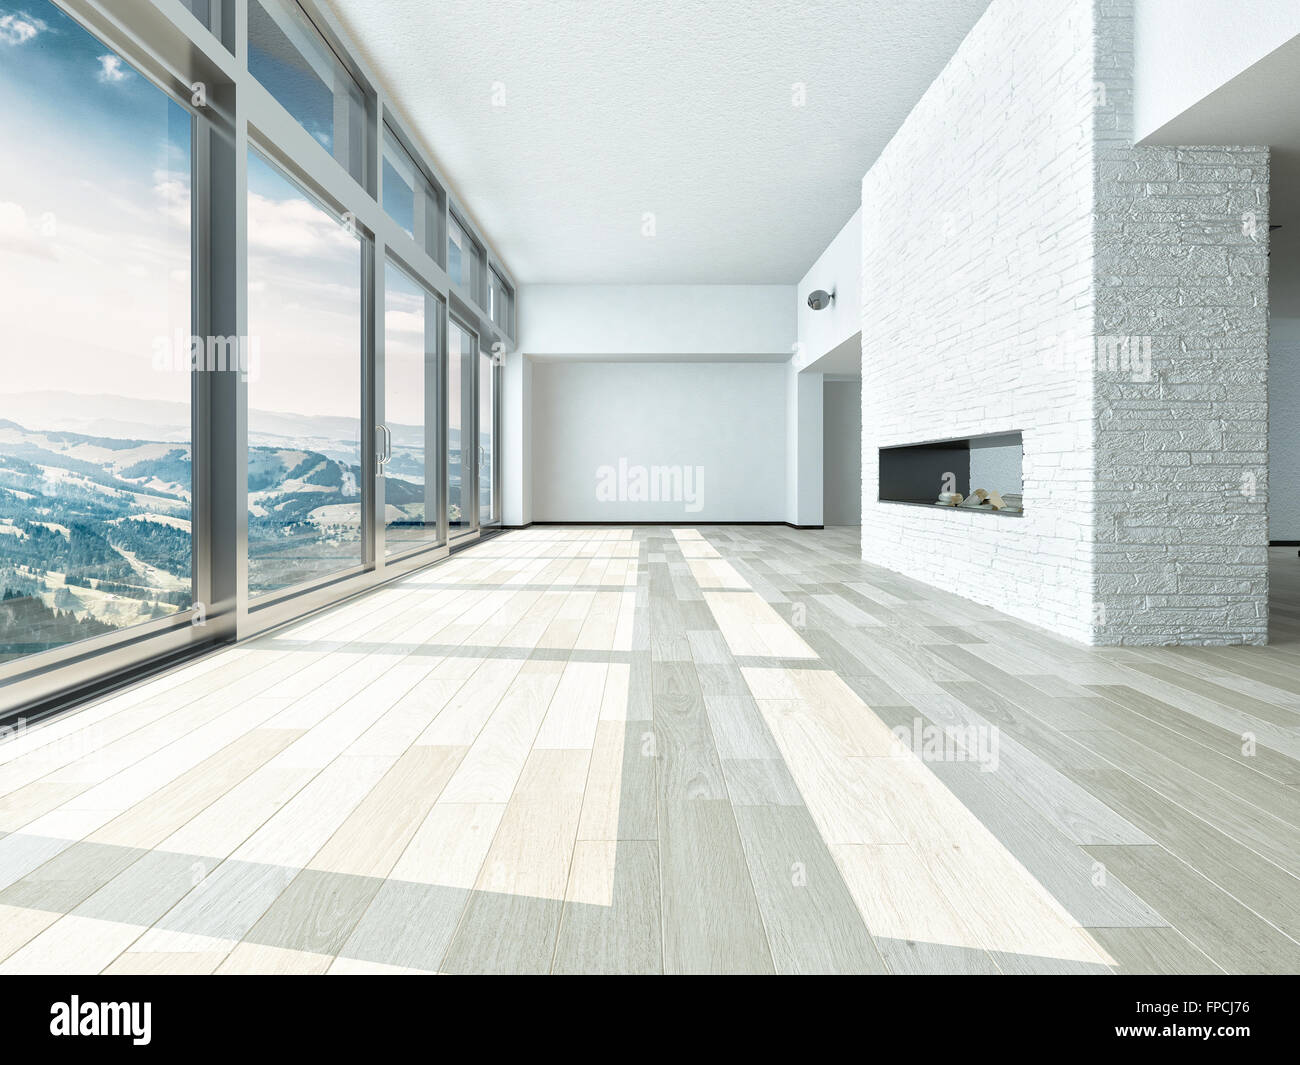 Empty Living Room Interior With A Large Floor To Ceiling View Window  Overlooking Mountains And A Valley With White Walls, White